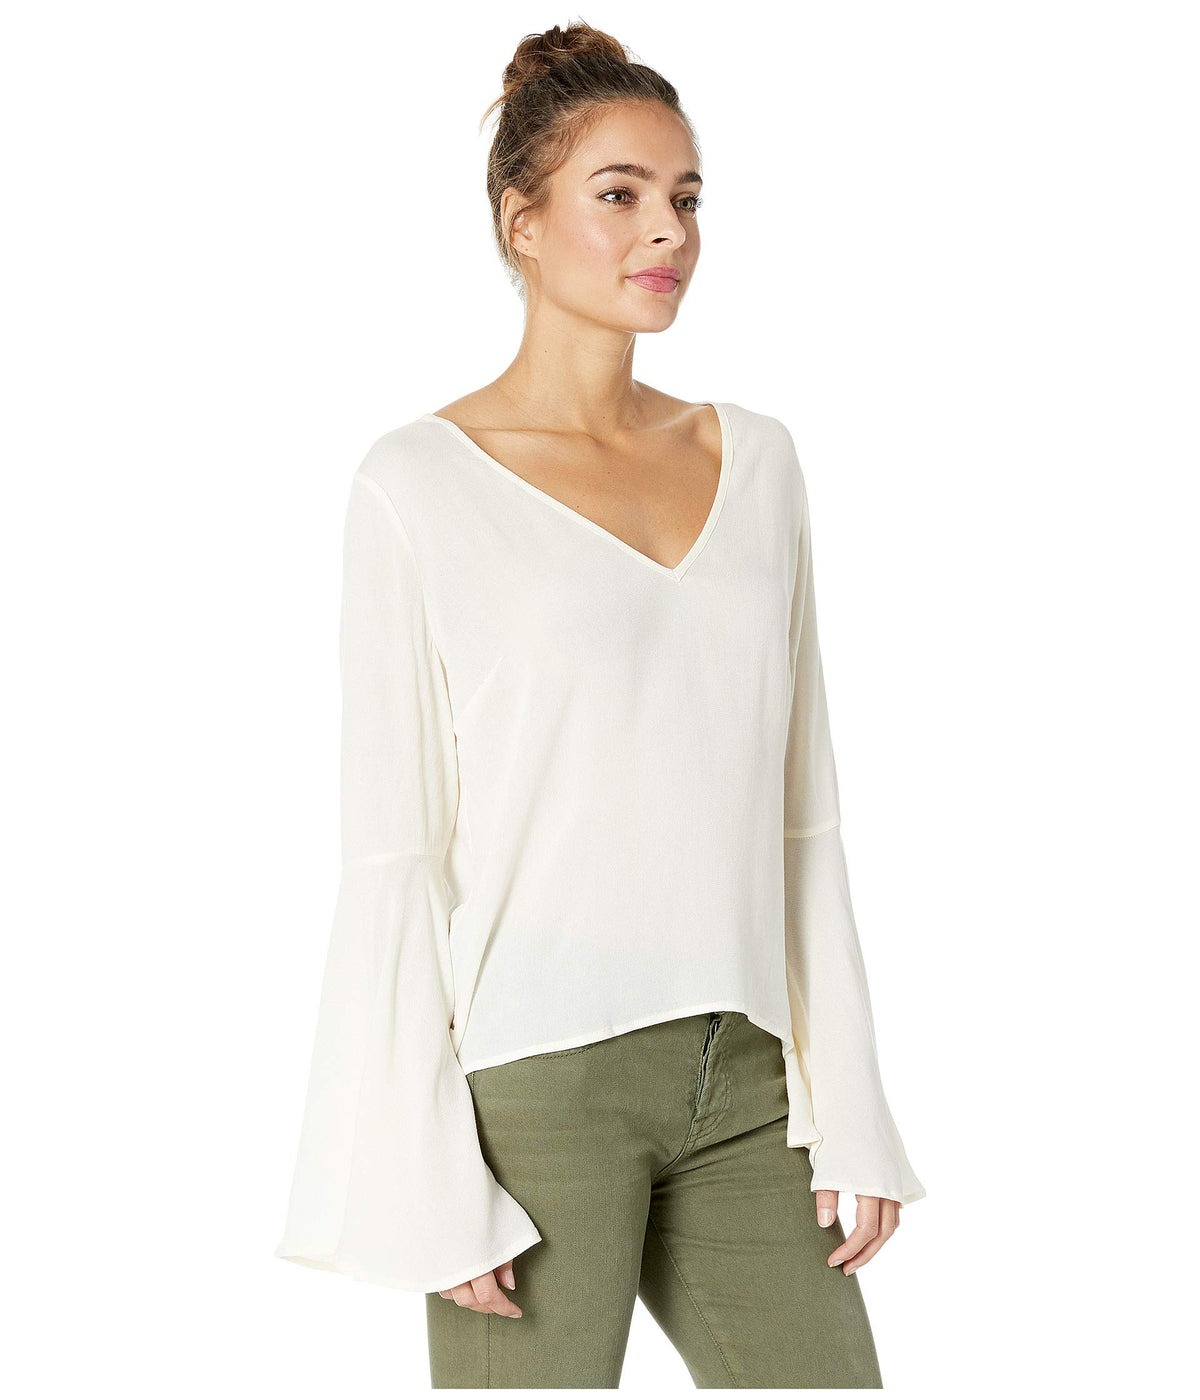 Talk To The Sleeve Rayon Crepe Bell Sleeve Top